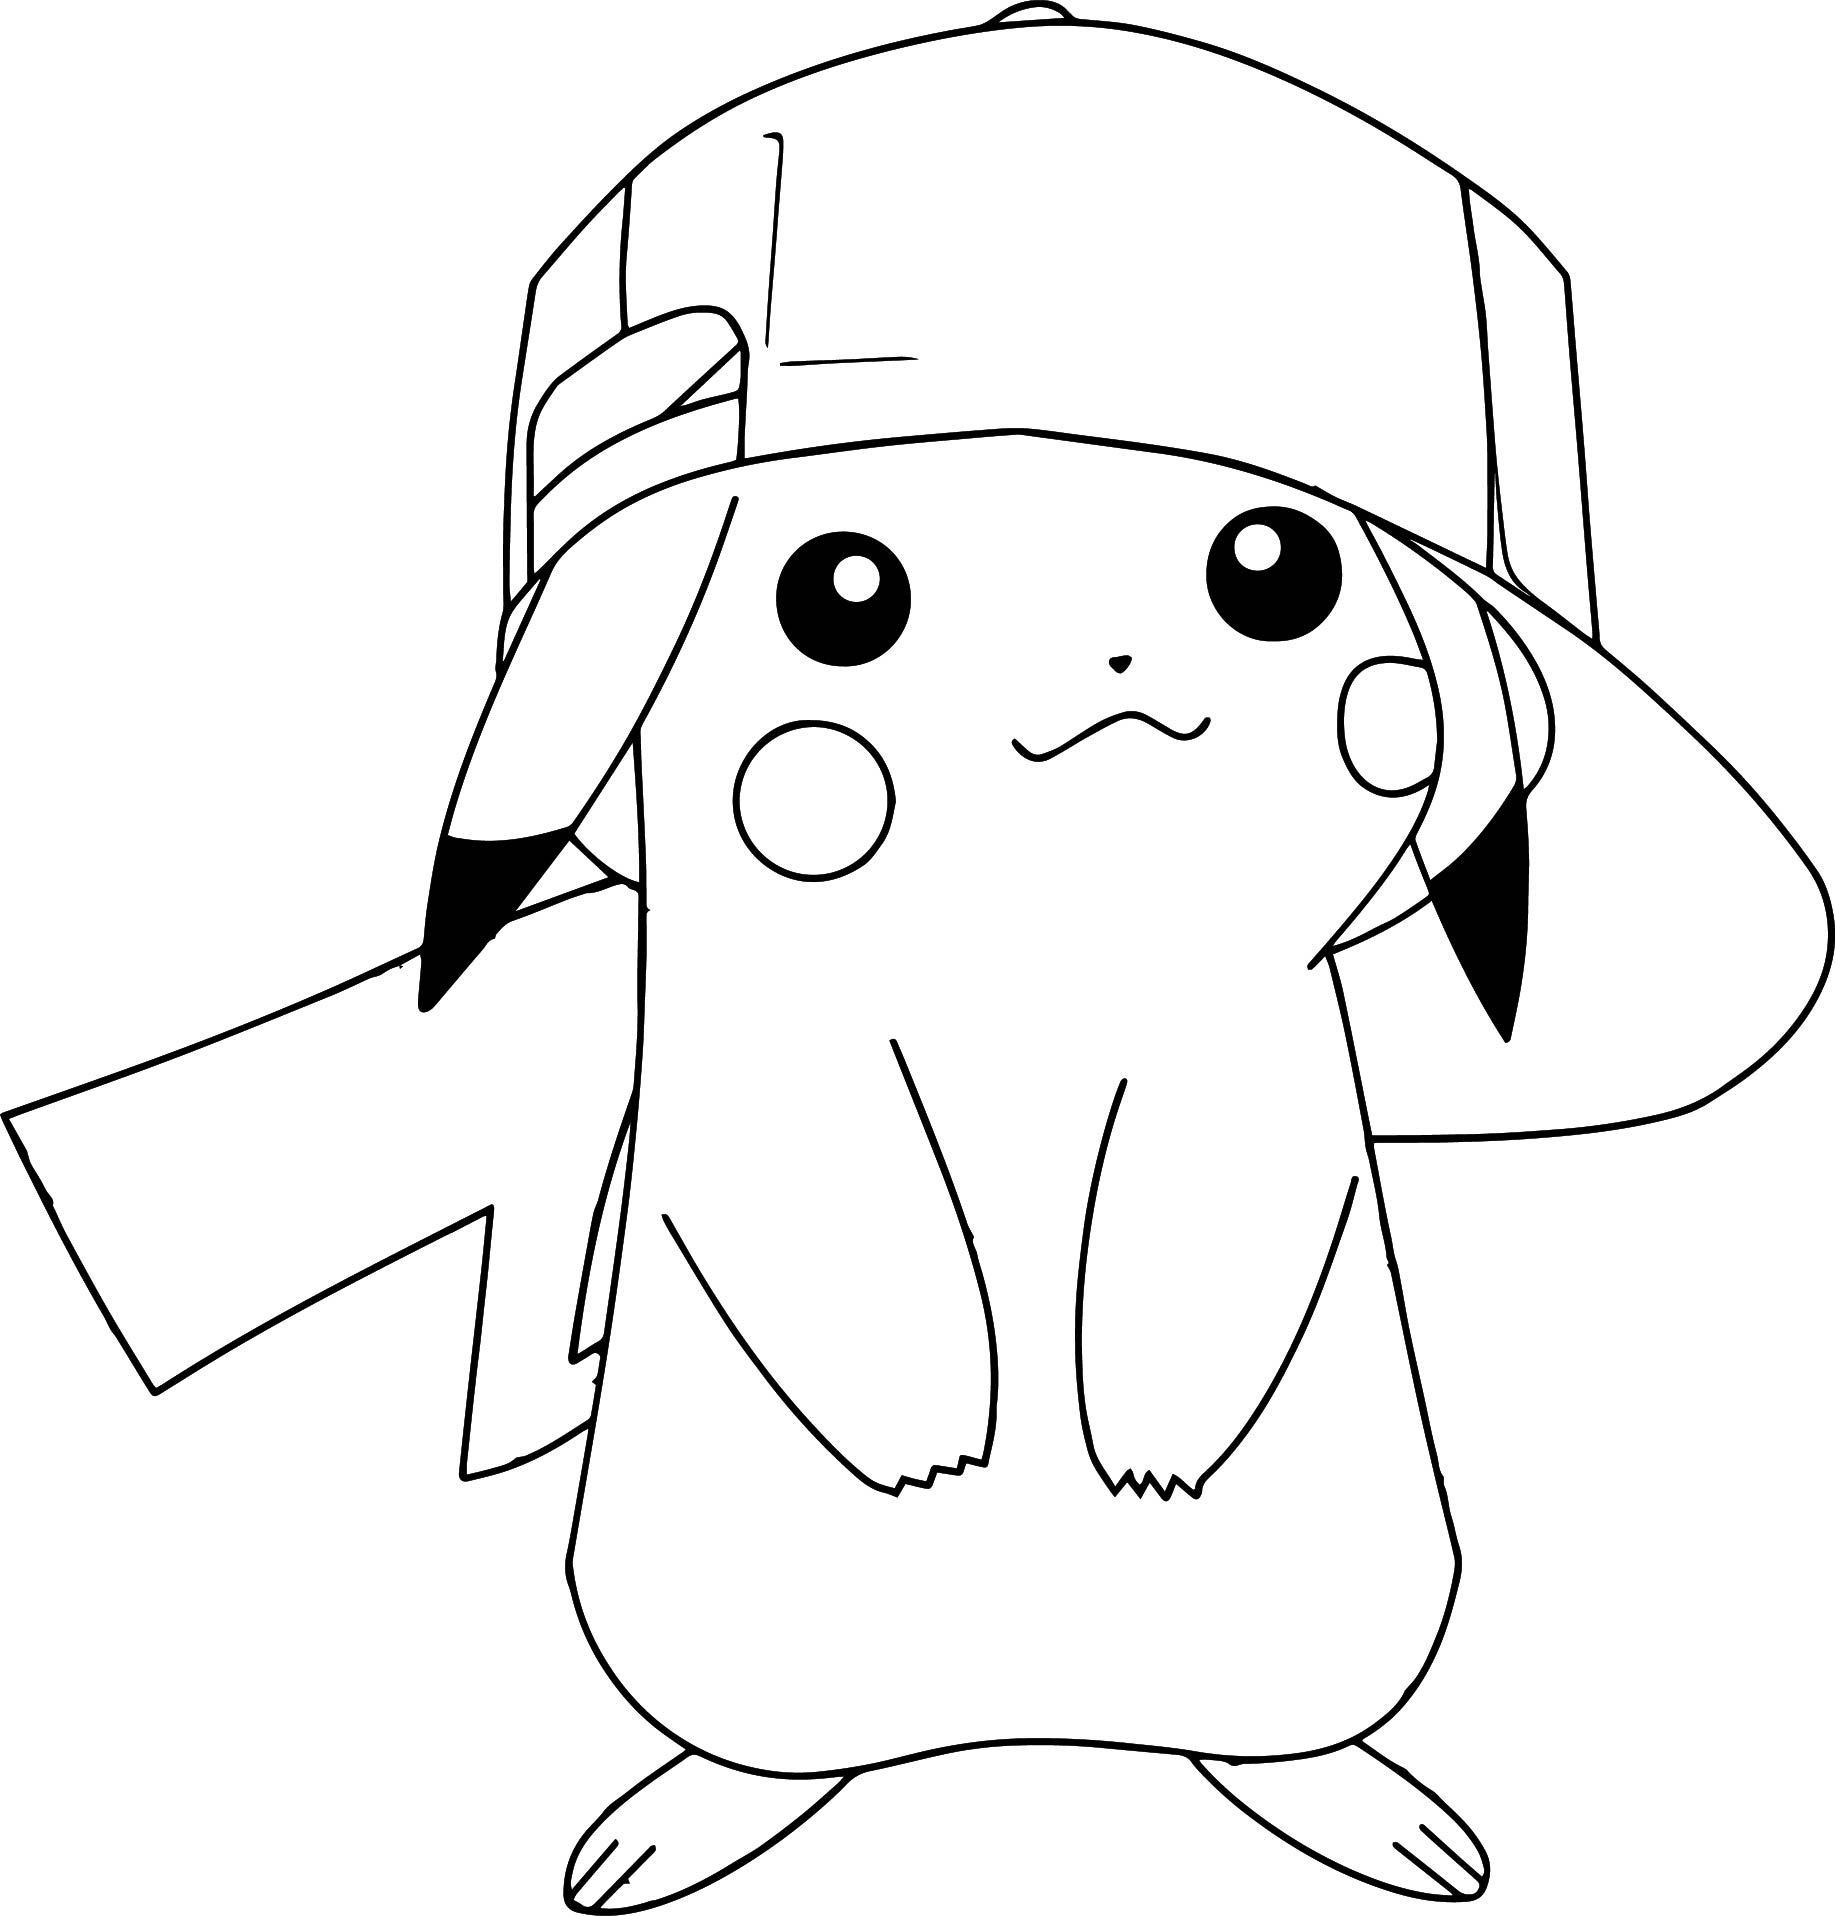 Pikachu With A Hat Coloring Page Through The Thousand Images On Line In Relation To Pika Pikachu Coloring Page Cartoon Coloring Pages Pokemon Coloring Sheets